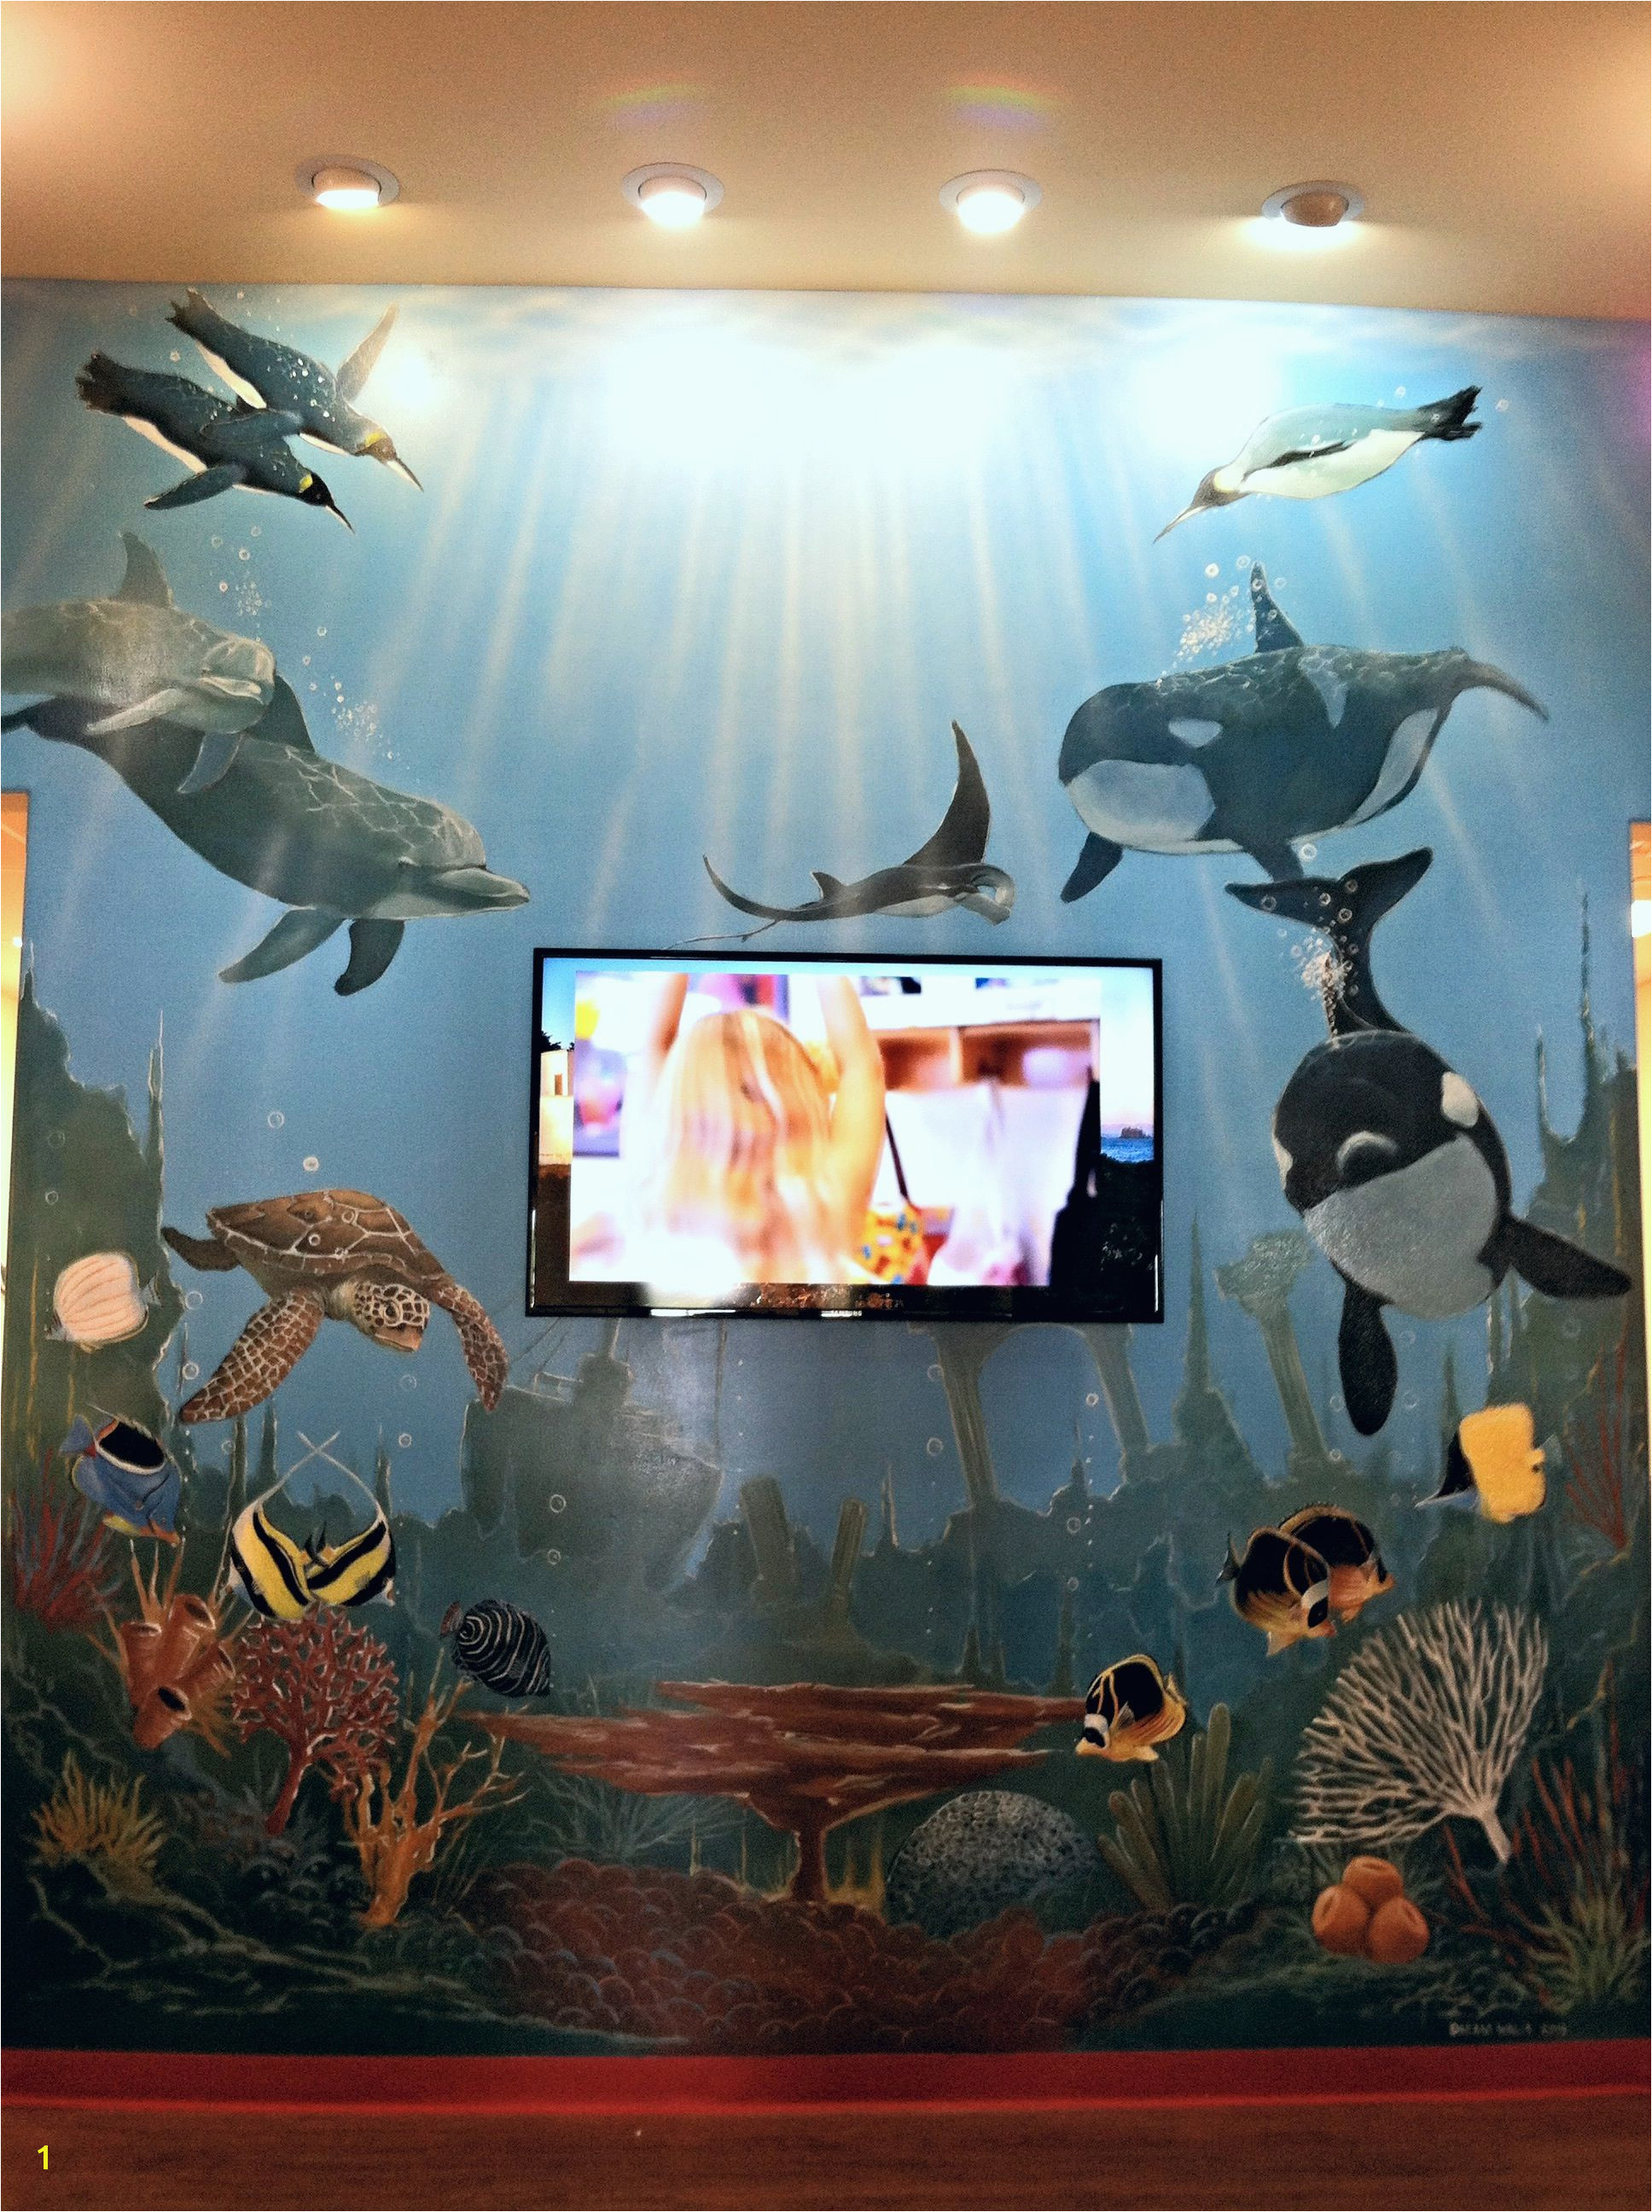 Underwater Mural at The Goddard School in League City Houston Texas Dream Walls Murals and Faux Finish By Artist Alfredo